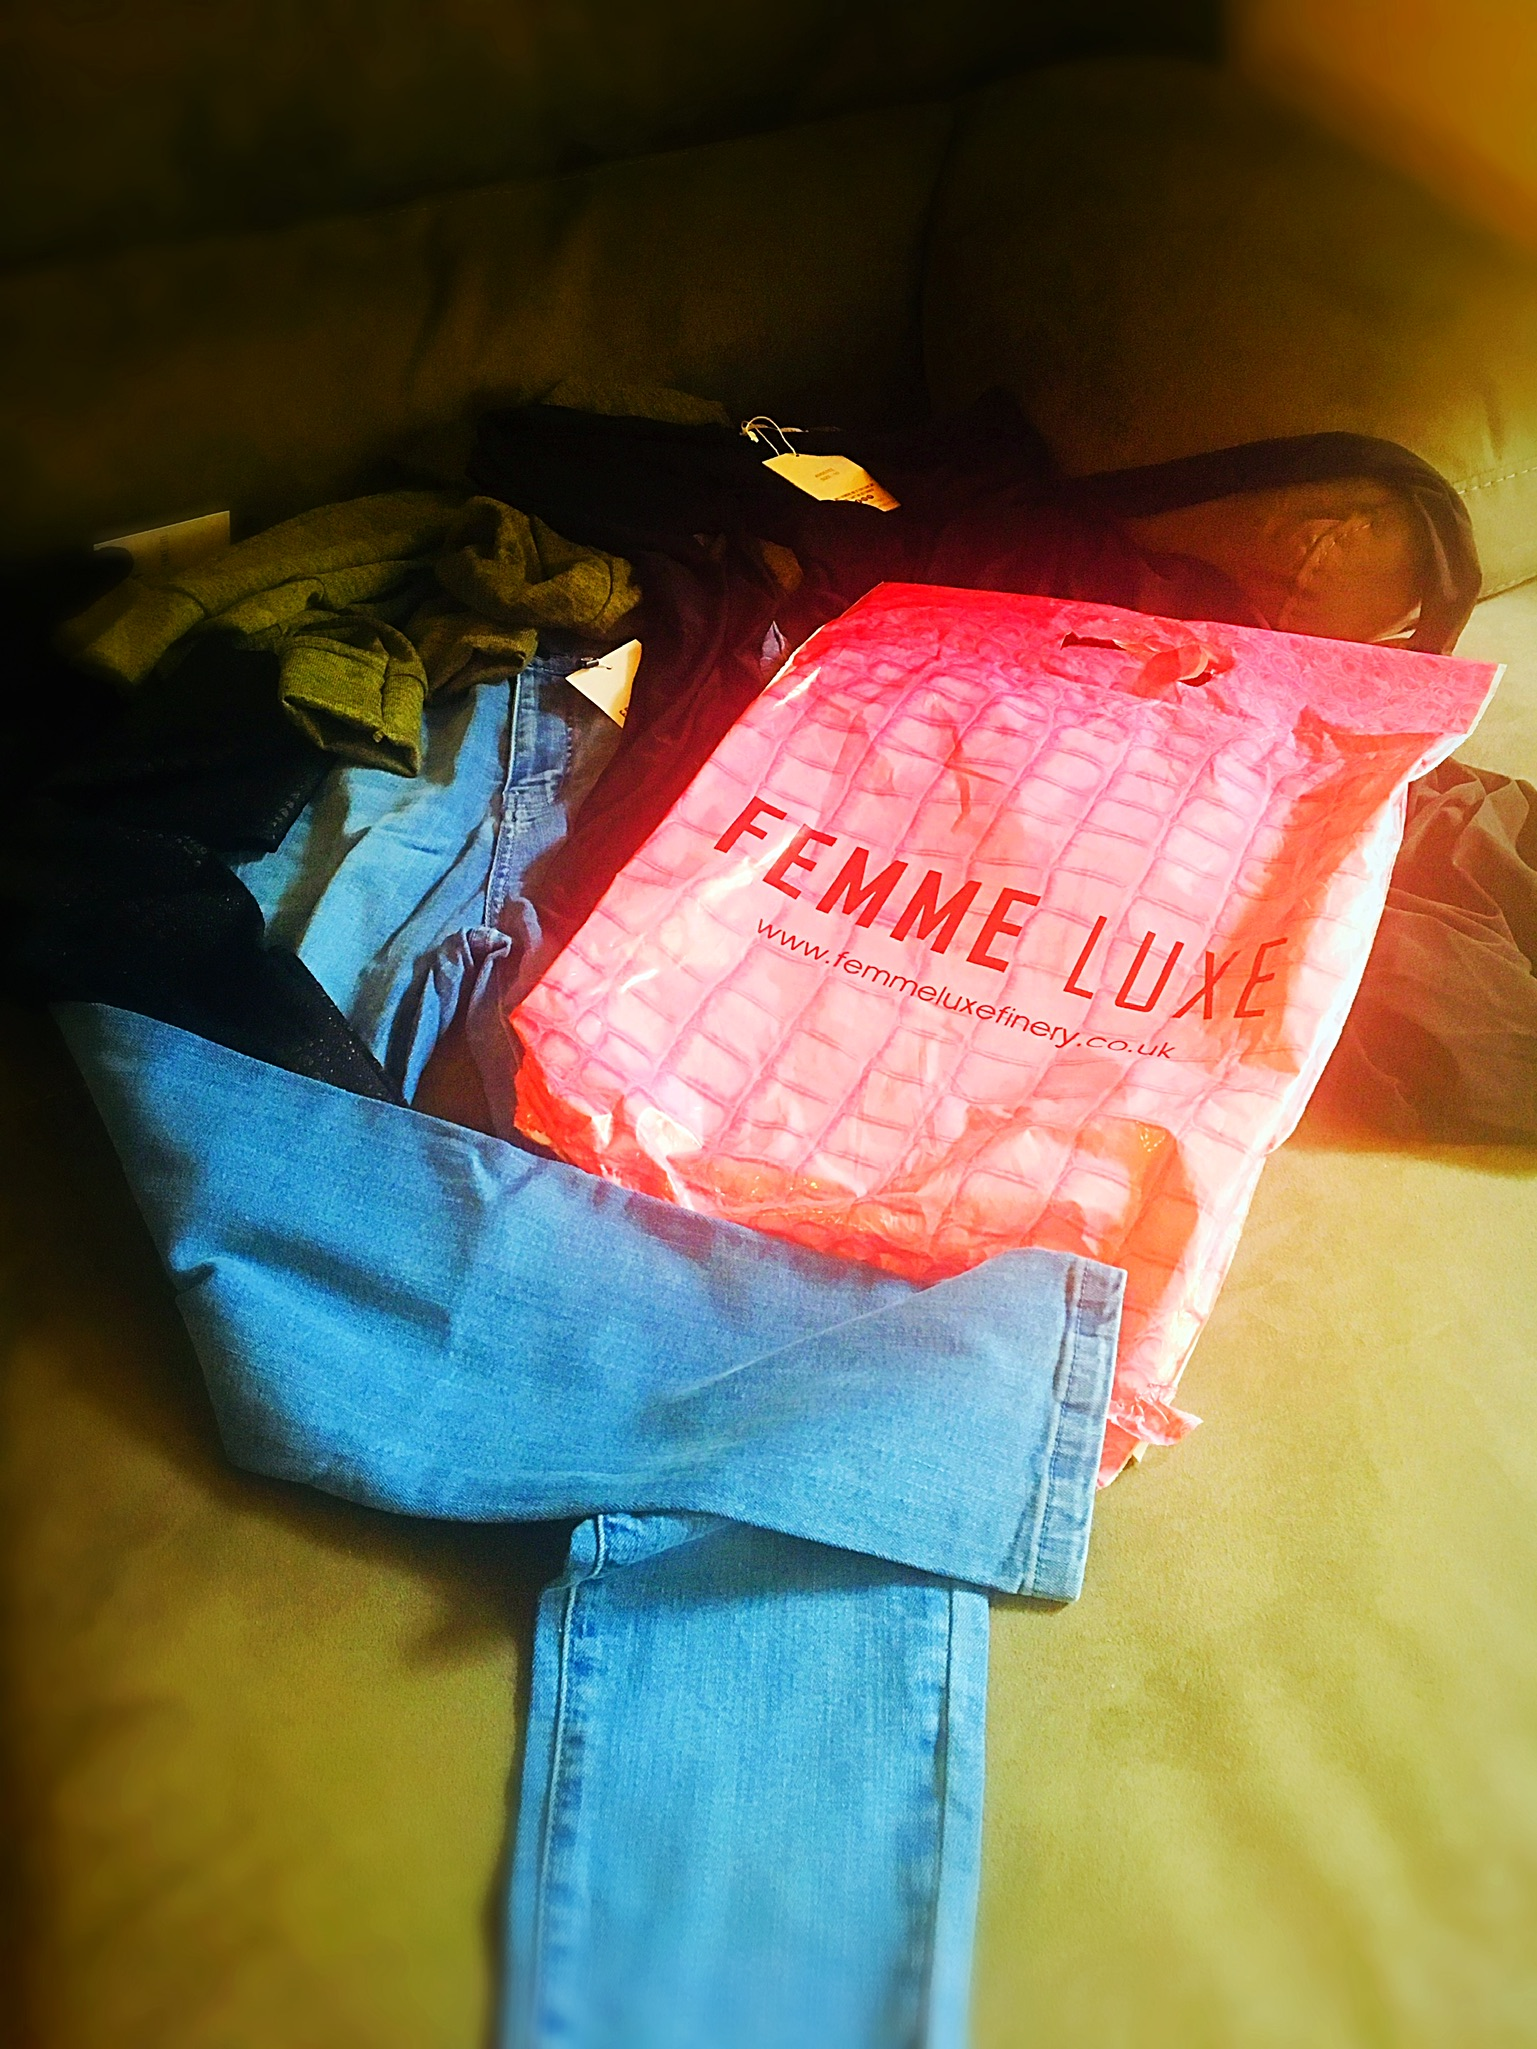 Femme Luxe Delivery